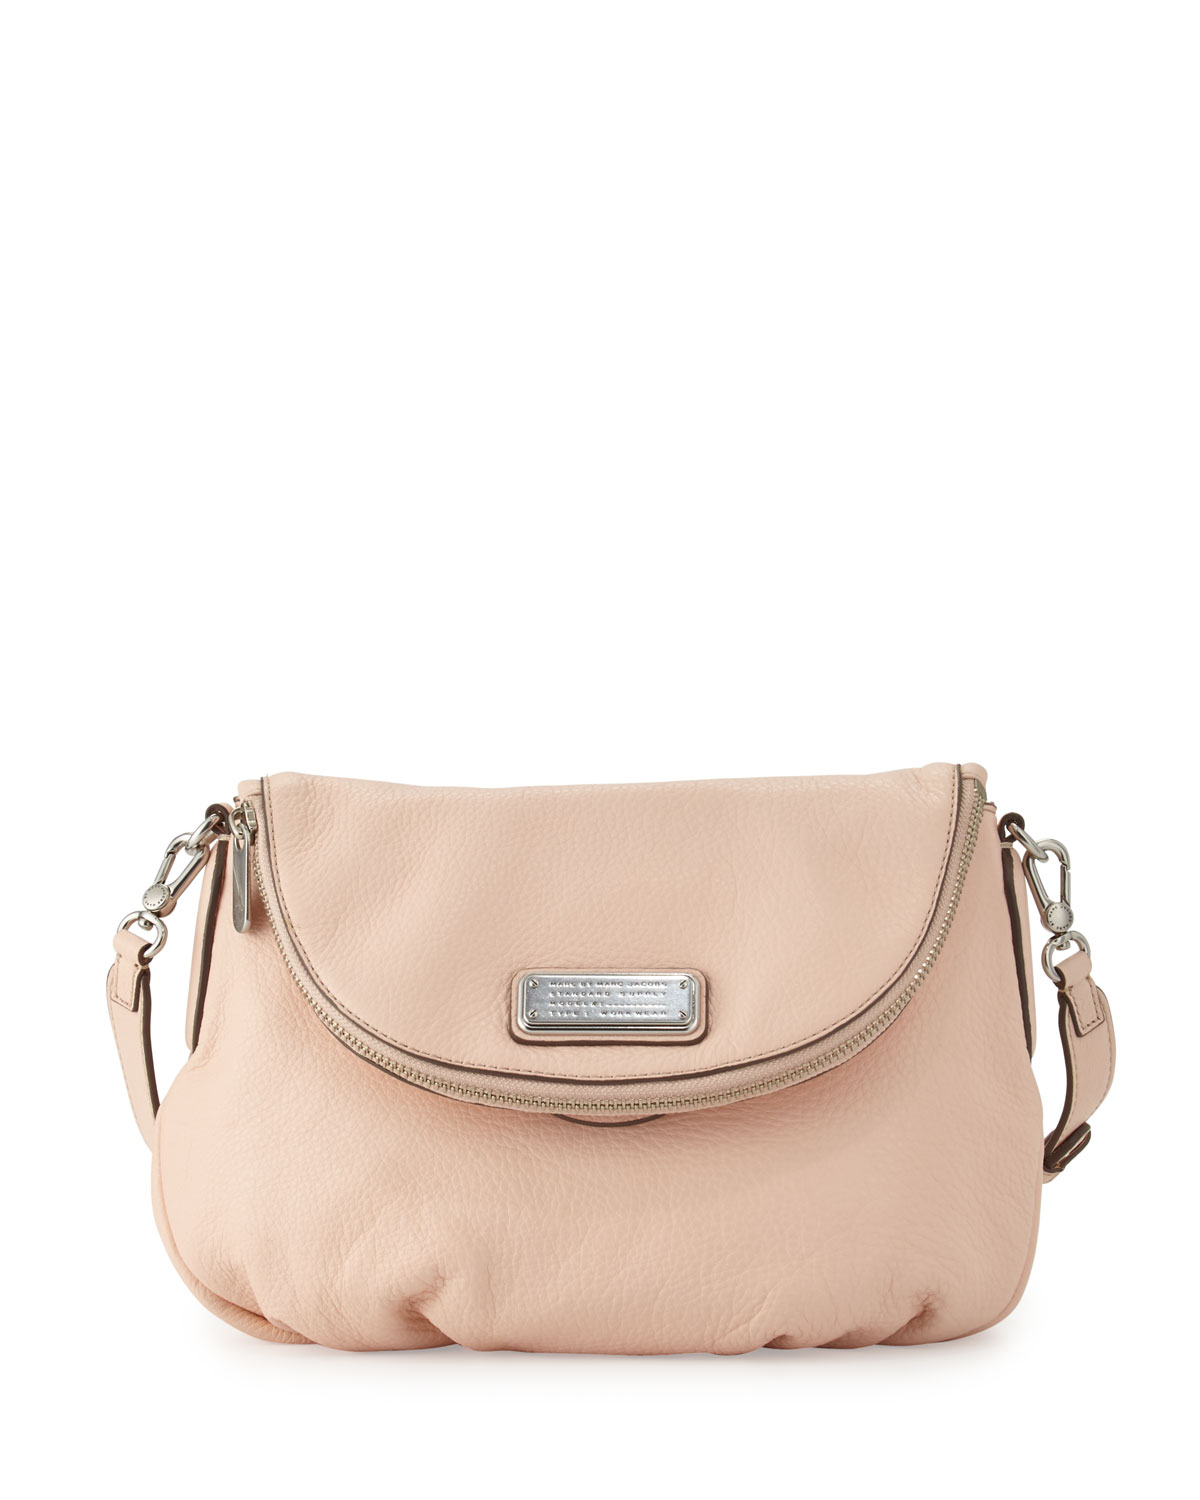 a2ee19f2d956 MARC by Marc Jacobs New Q Natasha Leather Crossbody Bag